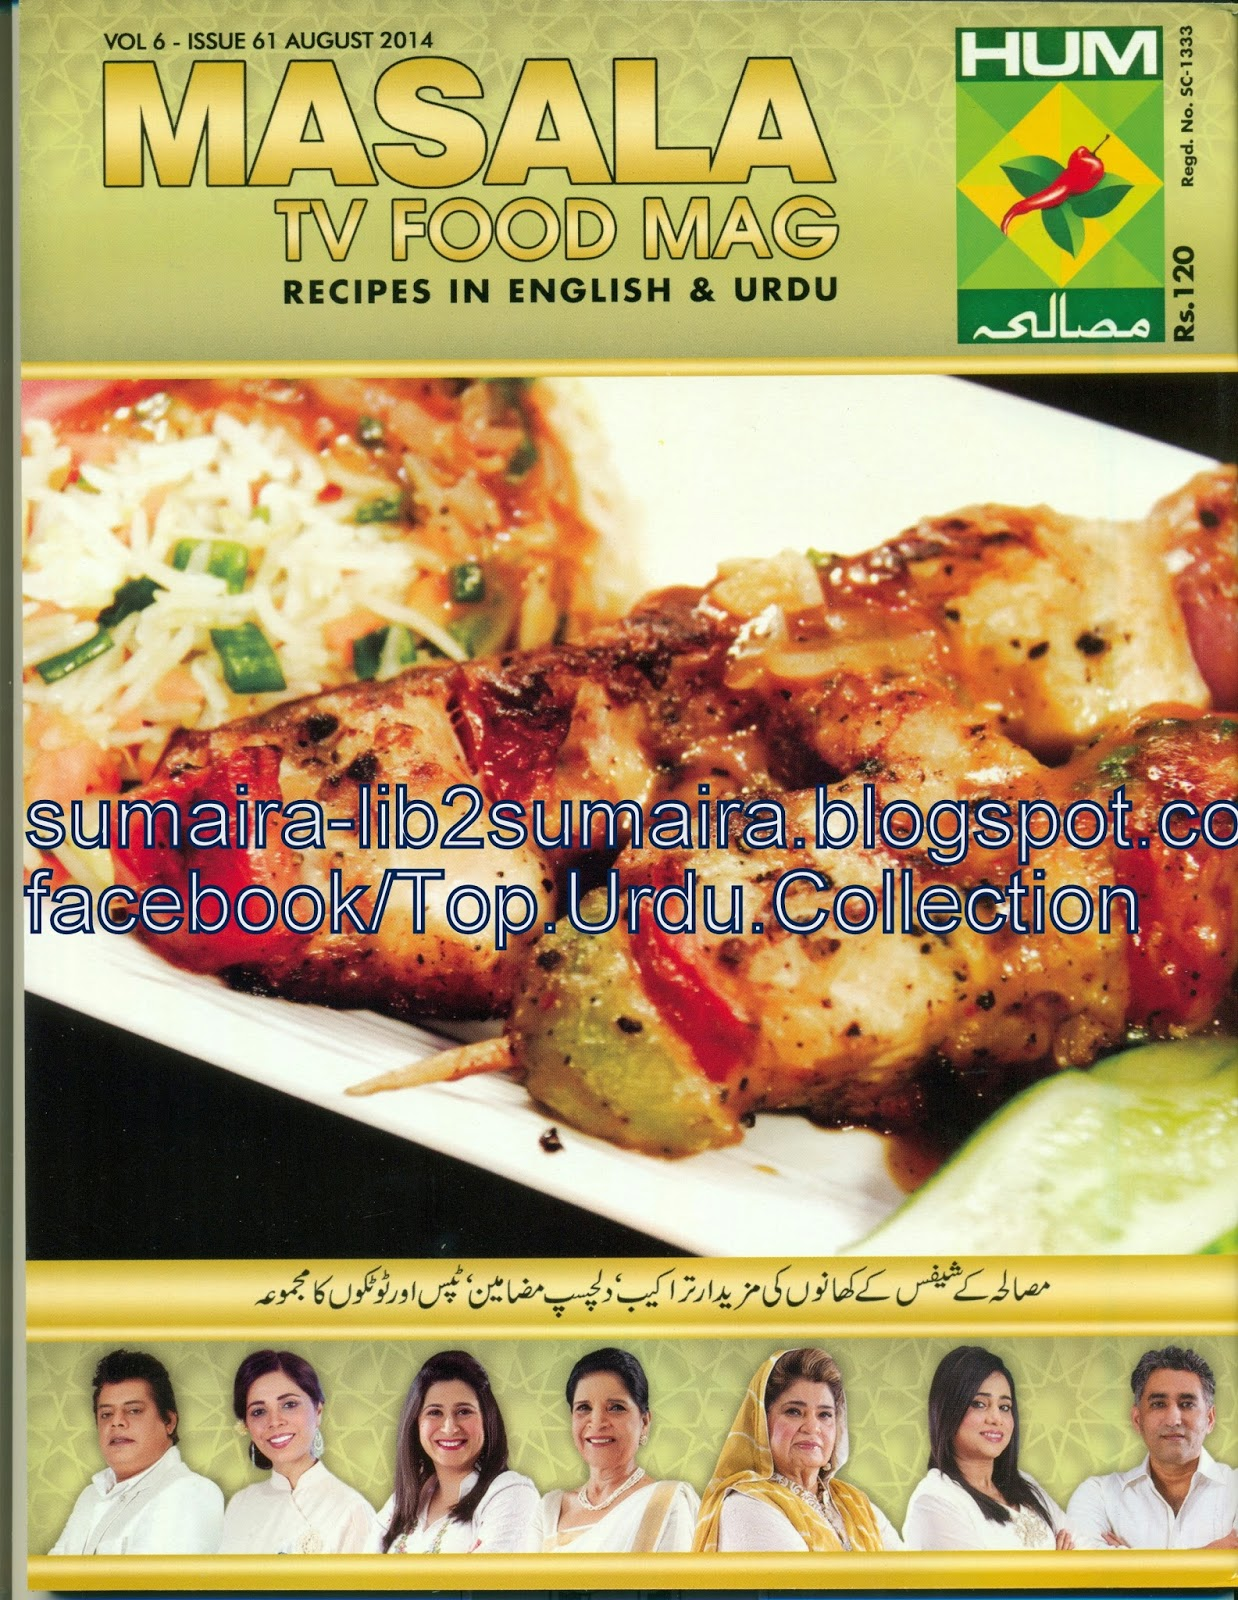 scan0008 - Masala Tv Food Mag August 2014